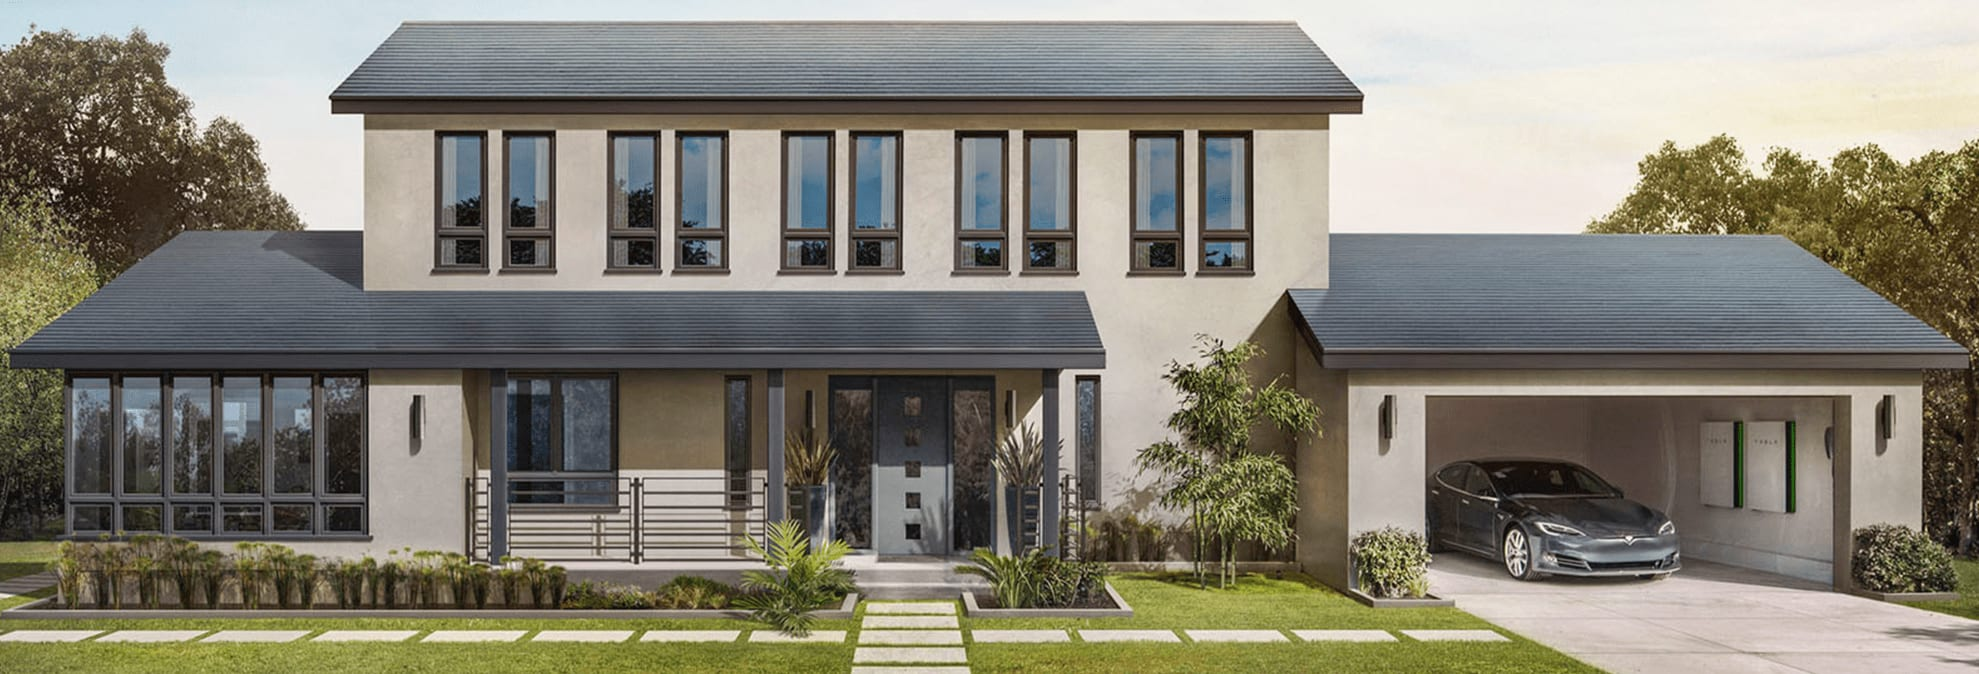 Doing the Math on Tesla's Solar Roof (Again)